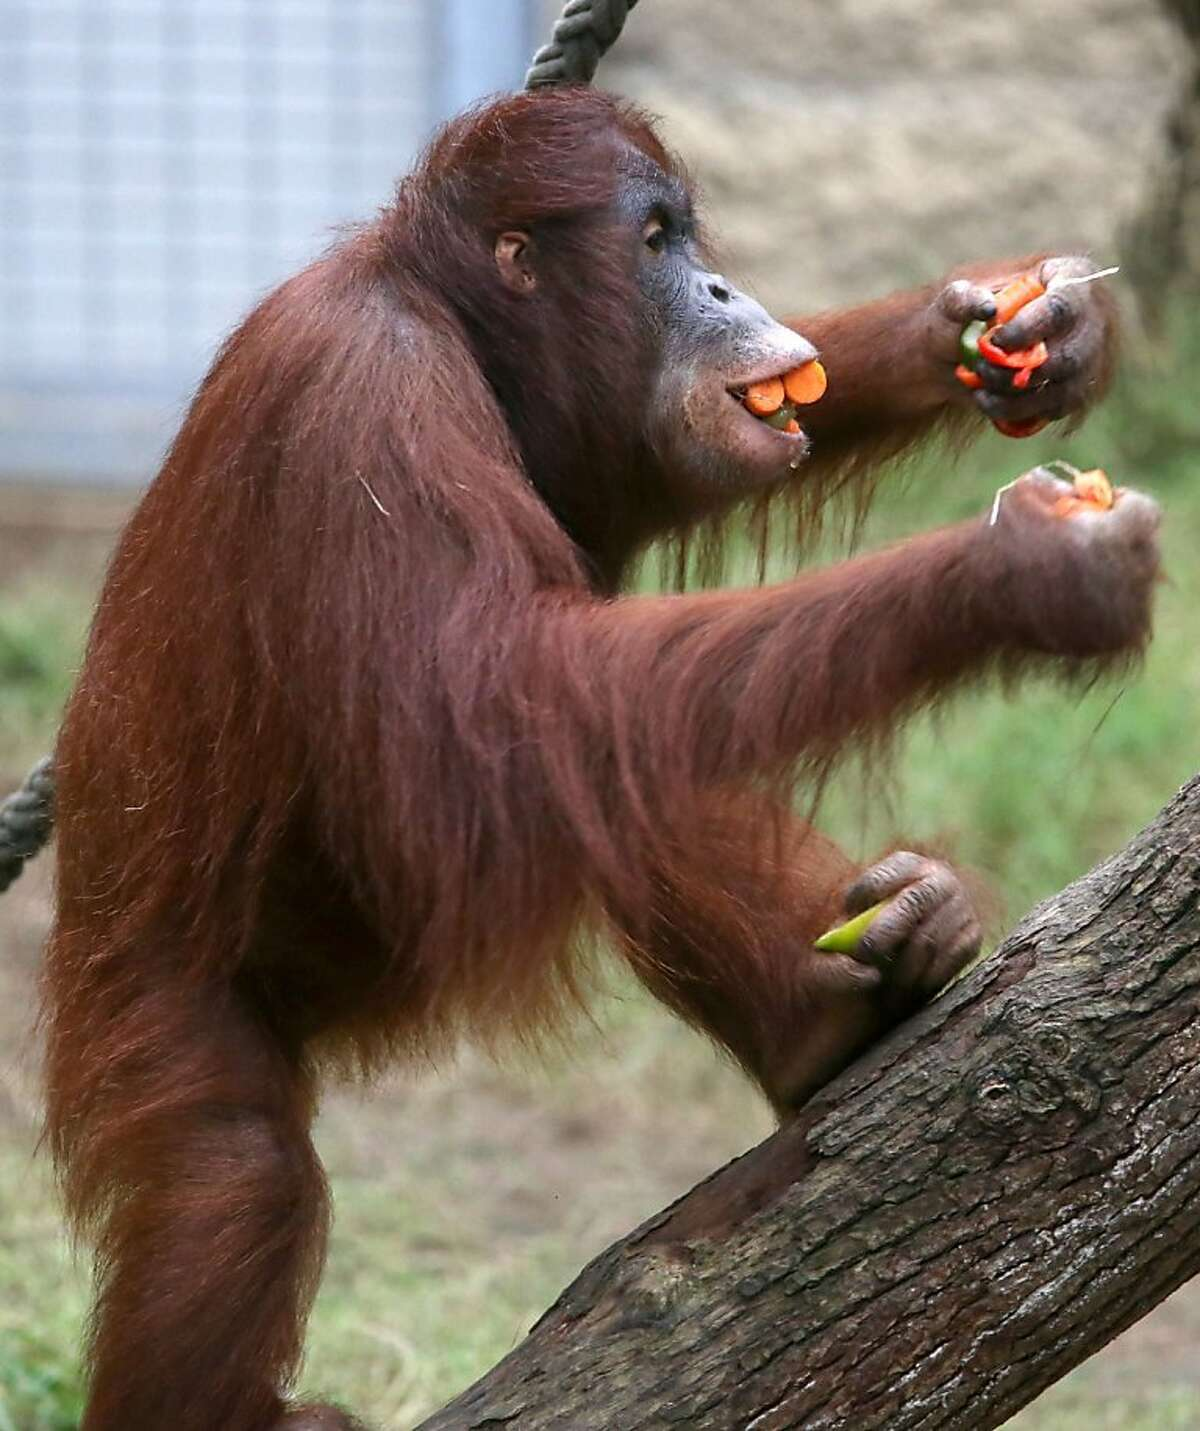 Climbing trees is hard when your hands - and feet - are full: Miri the orang is like the guest at a cocktail party who stuffs his pockets with hors d'oeuvres for later. (Darwineum in Rostock, Germany.)